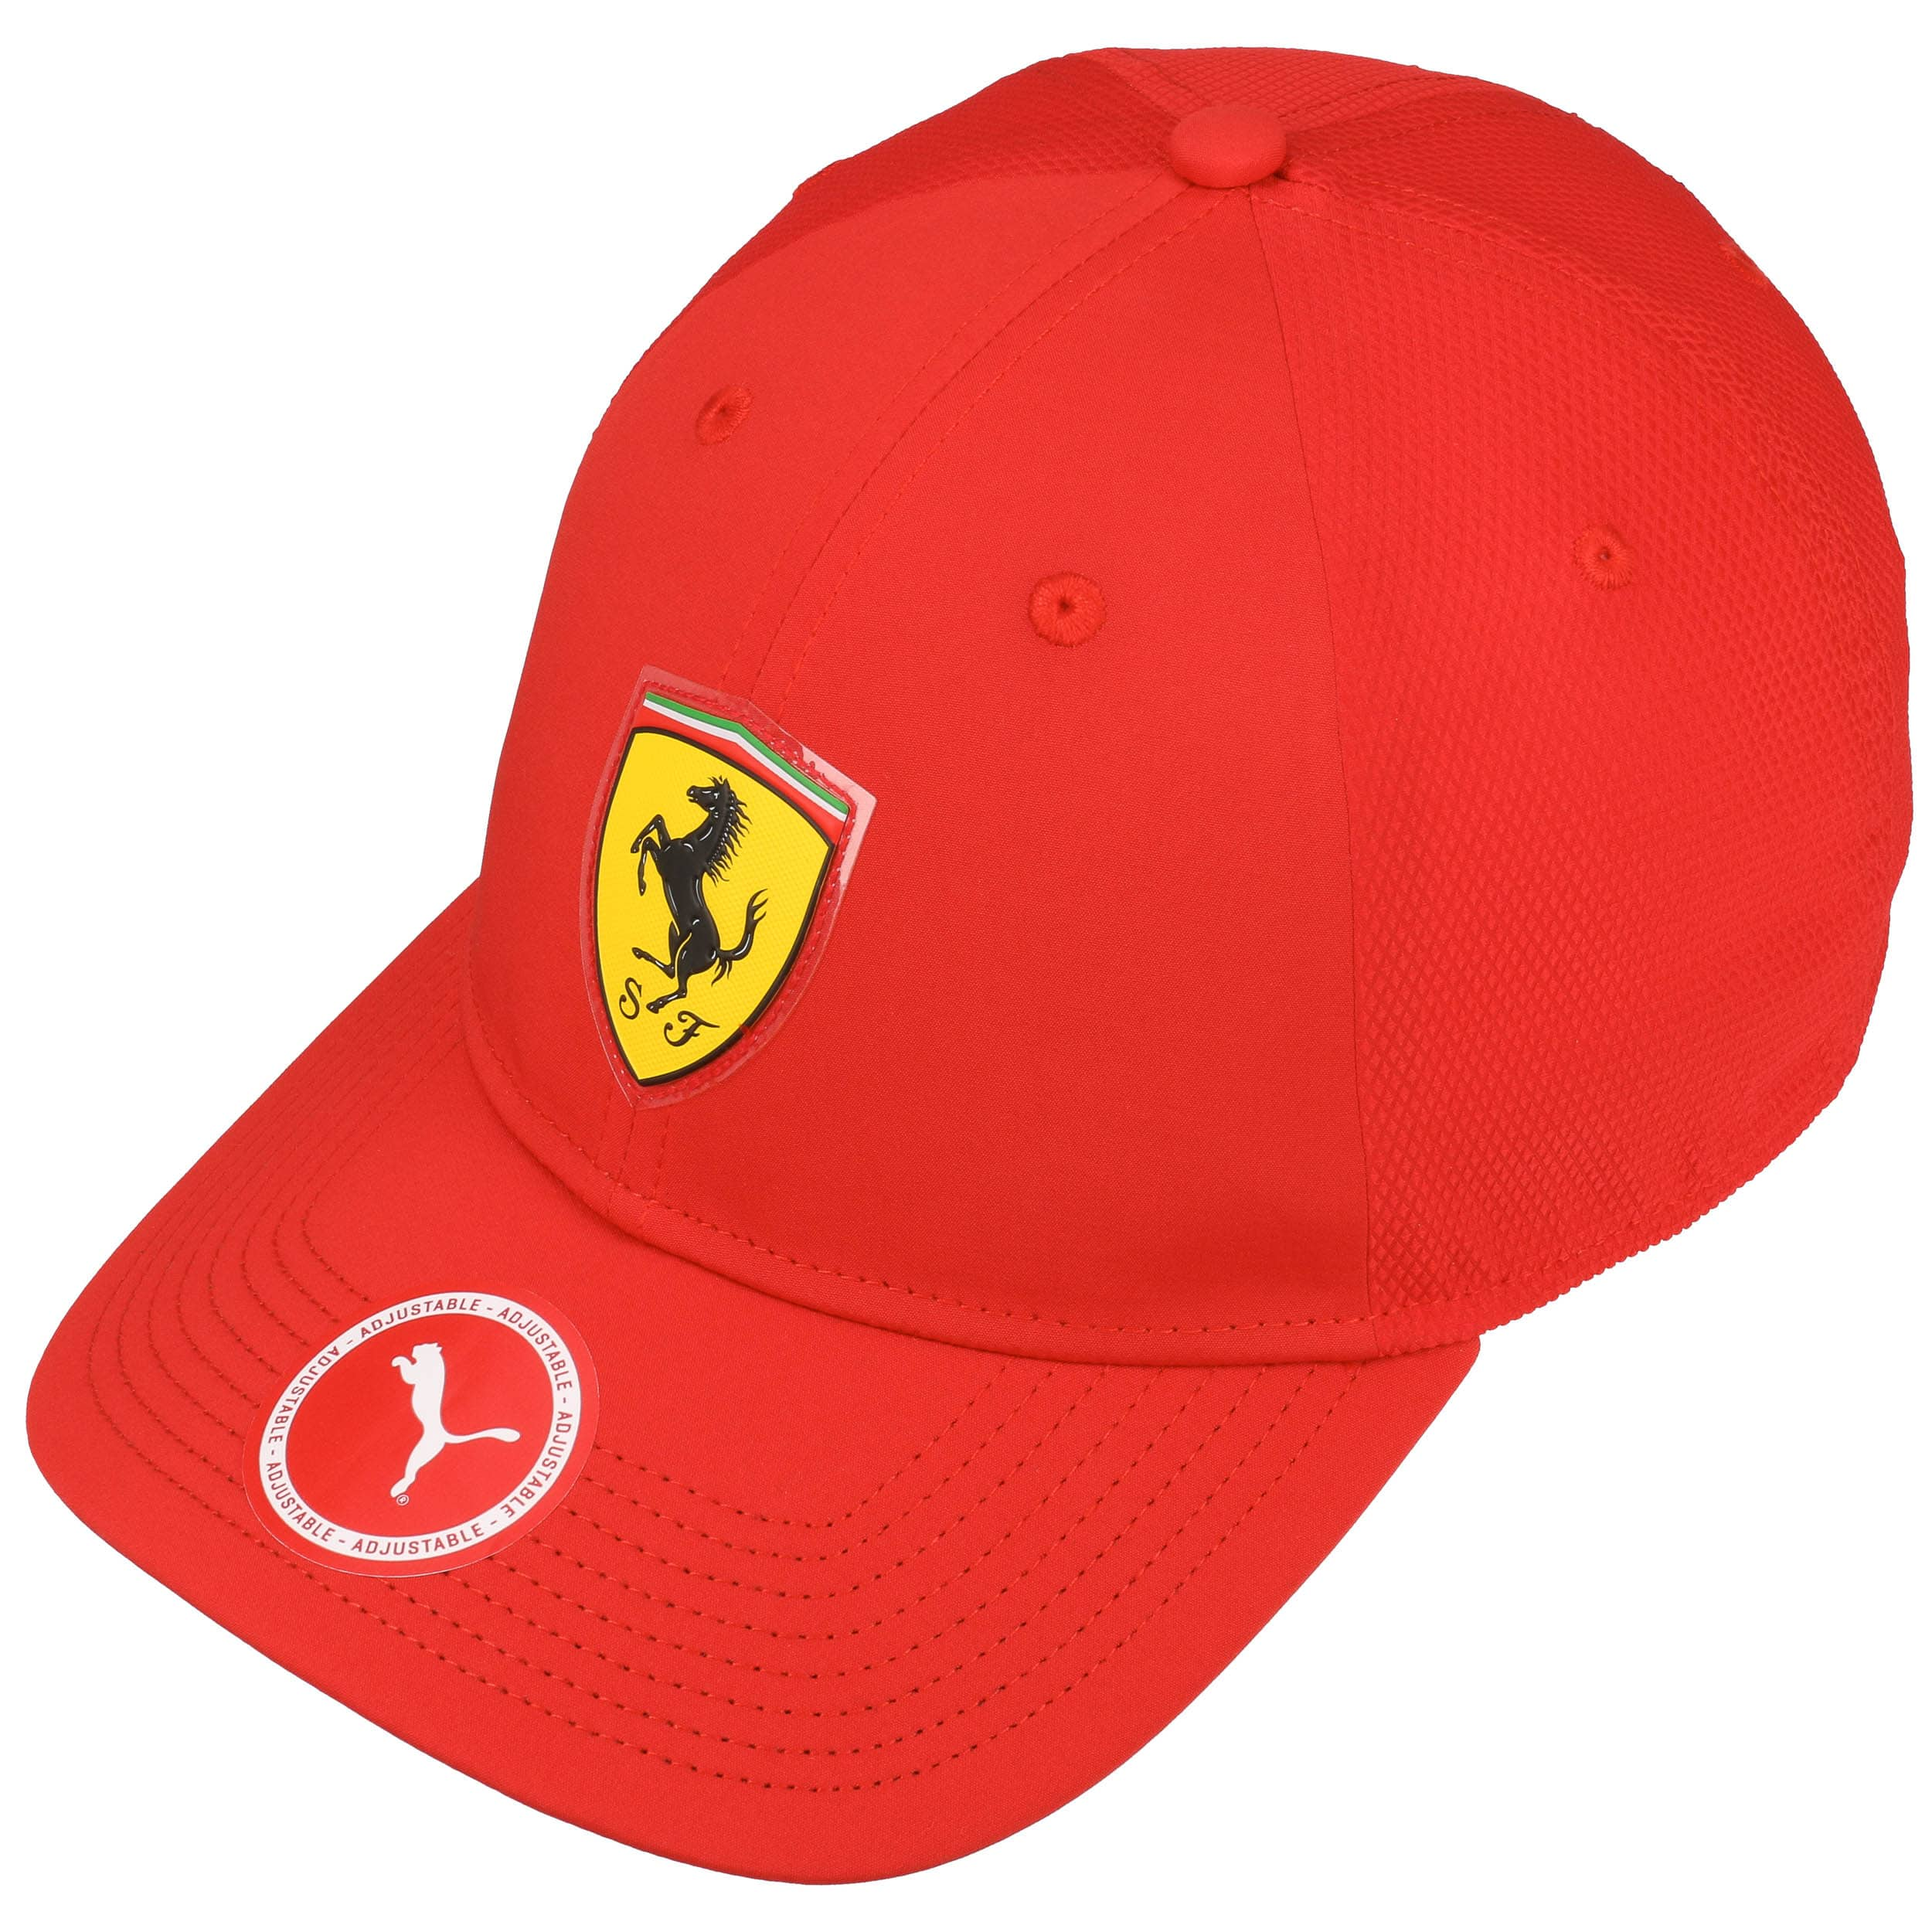 corsa hat men accessories rosso s for red replica vettel puma ferrari in lyst